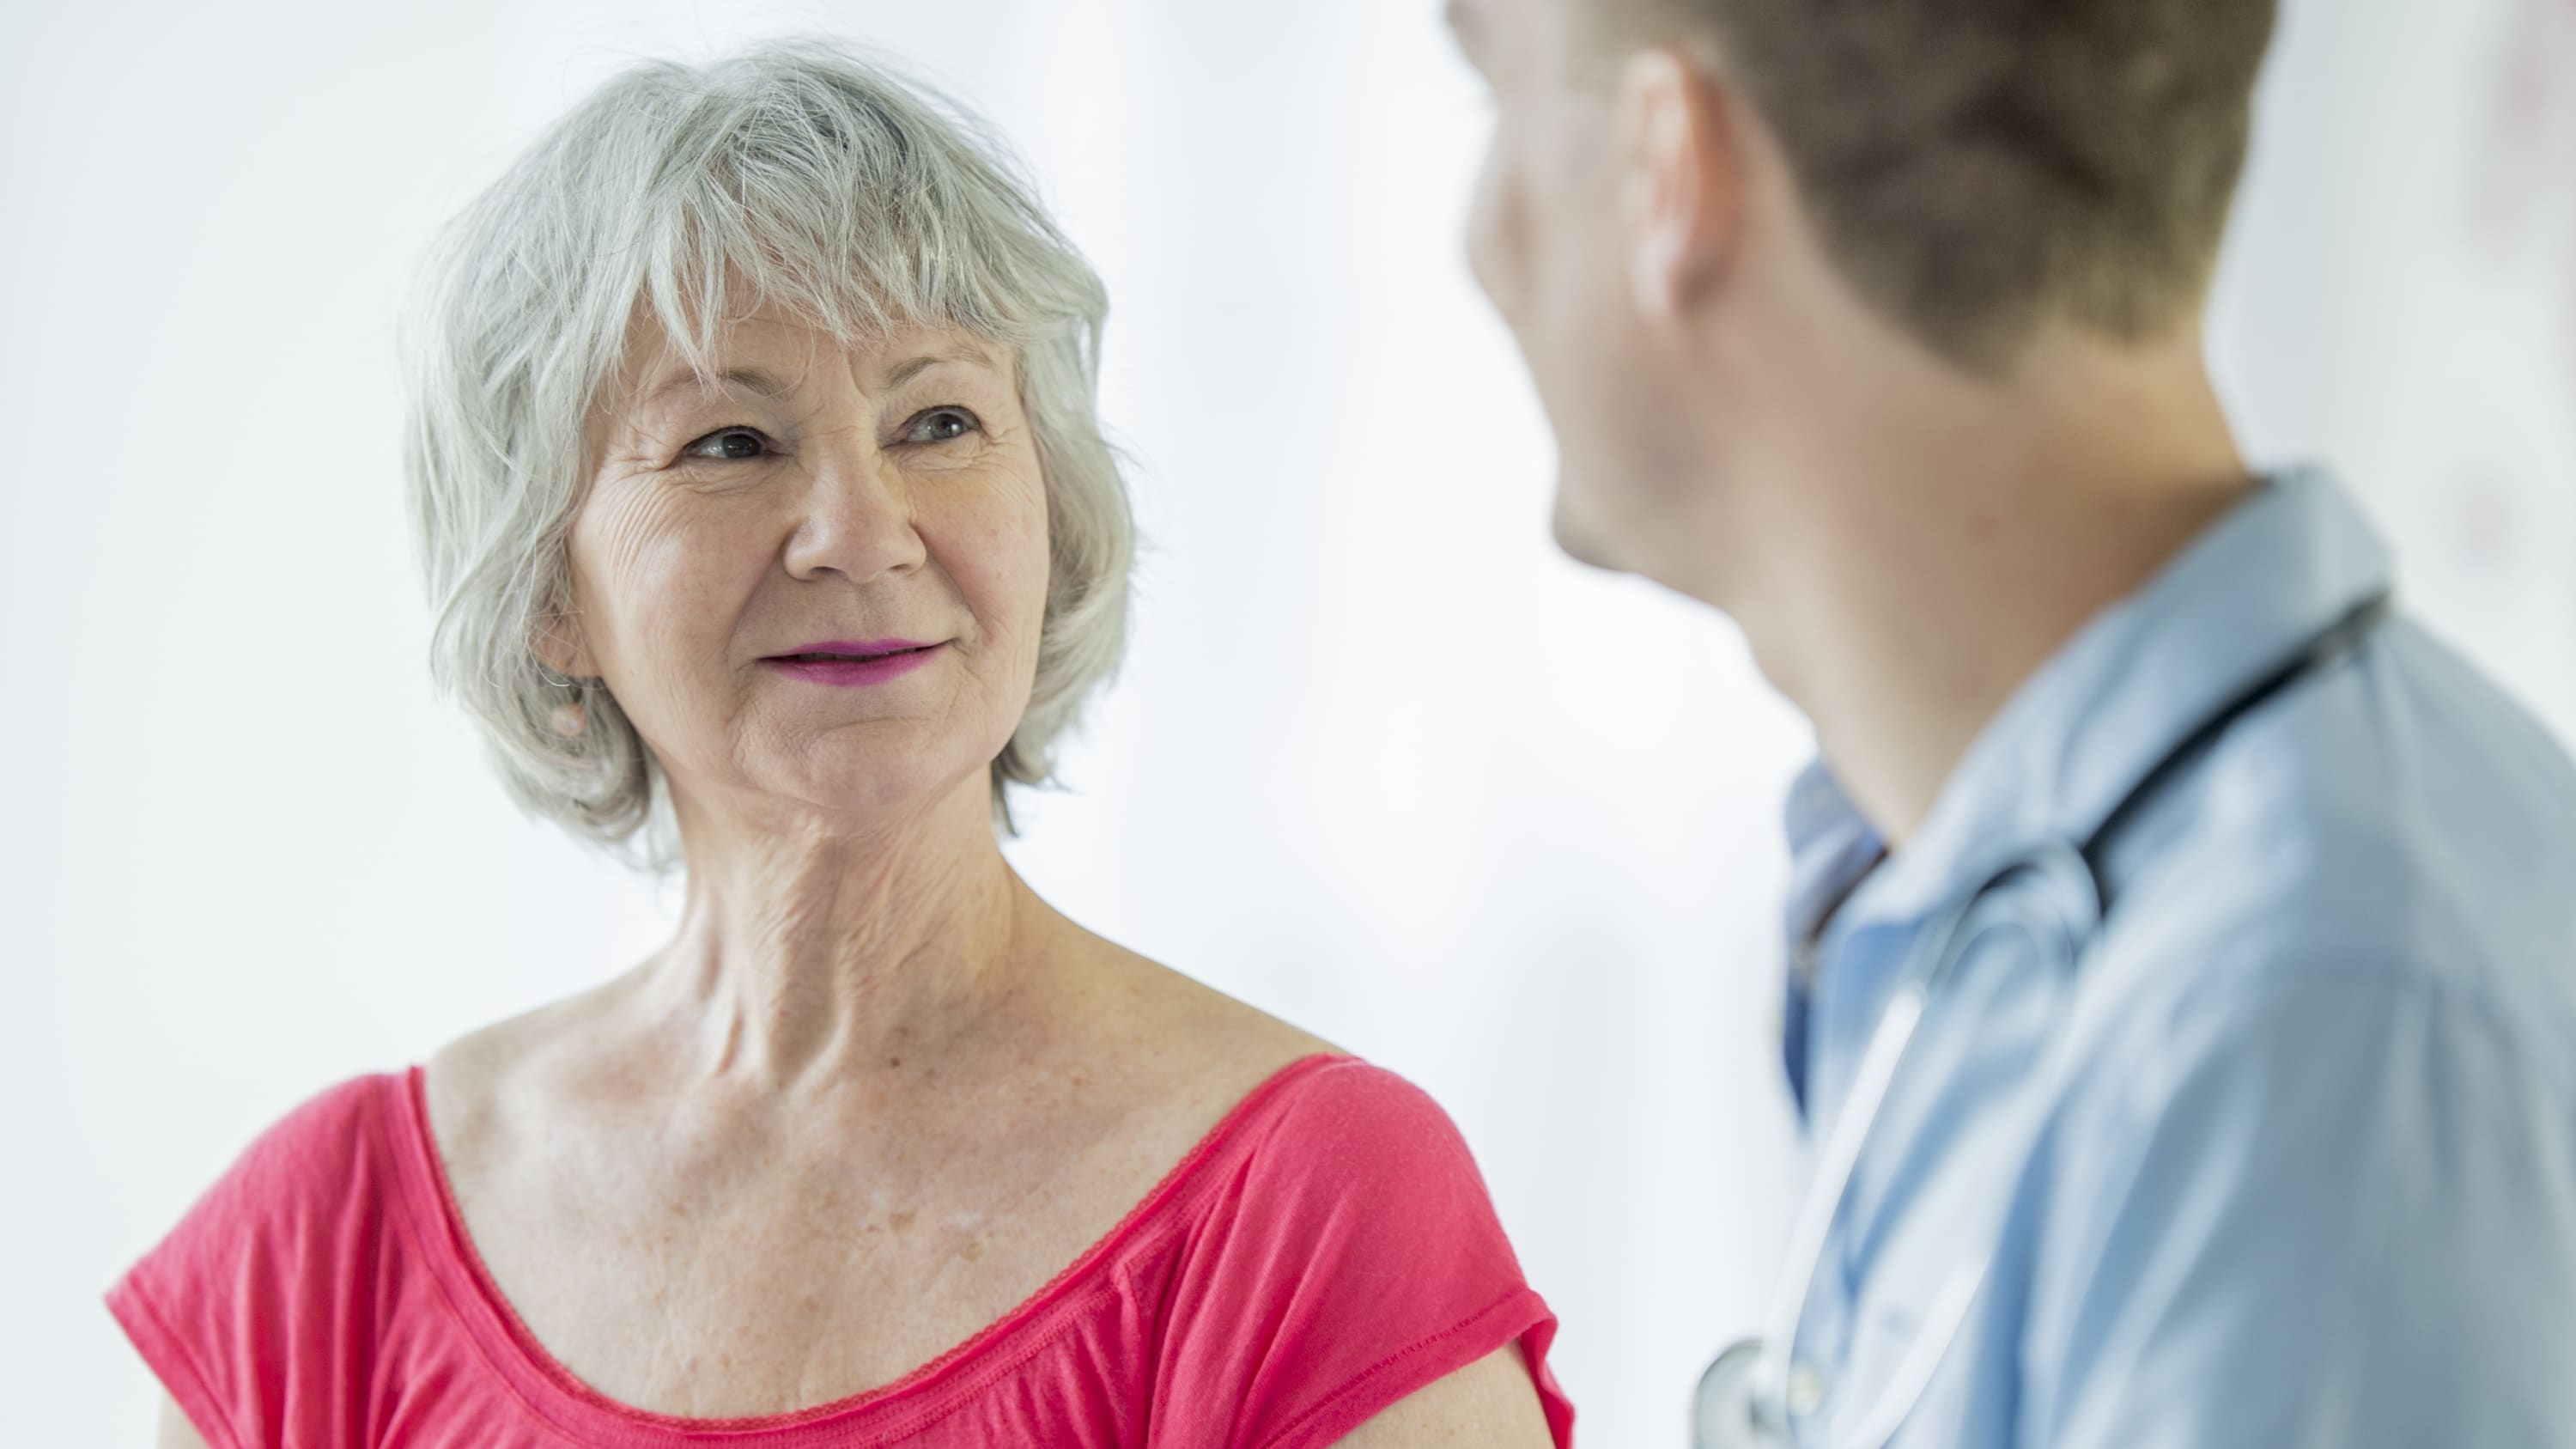 An older woman discusses the need for a tracheostomy with her doctor.